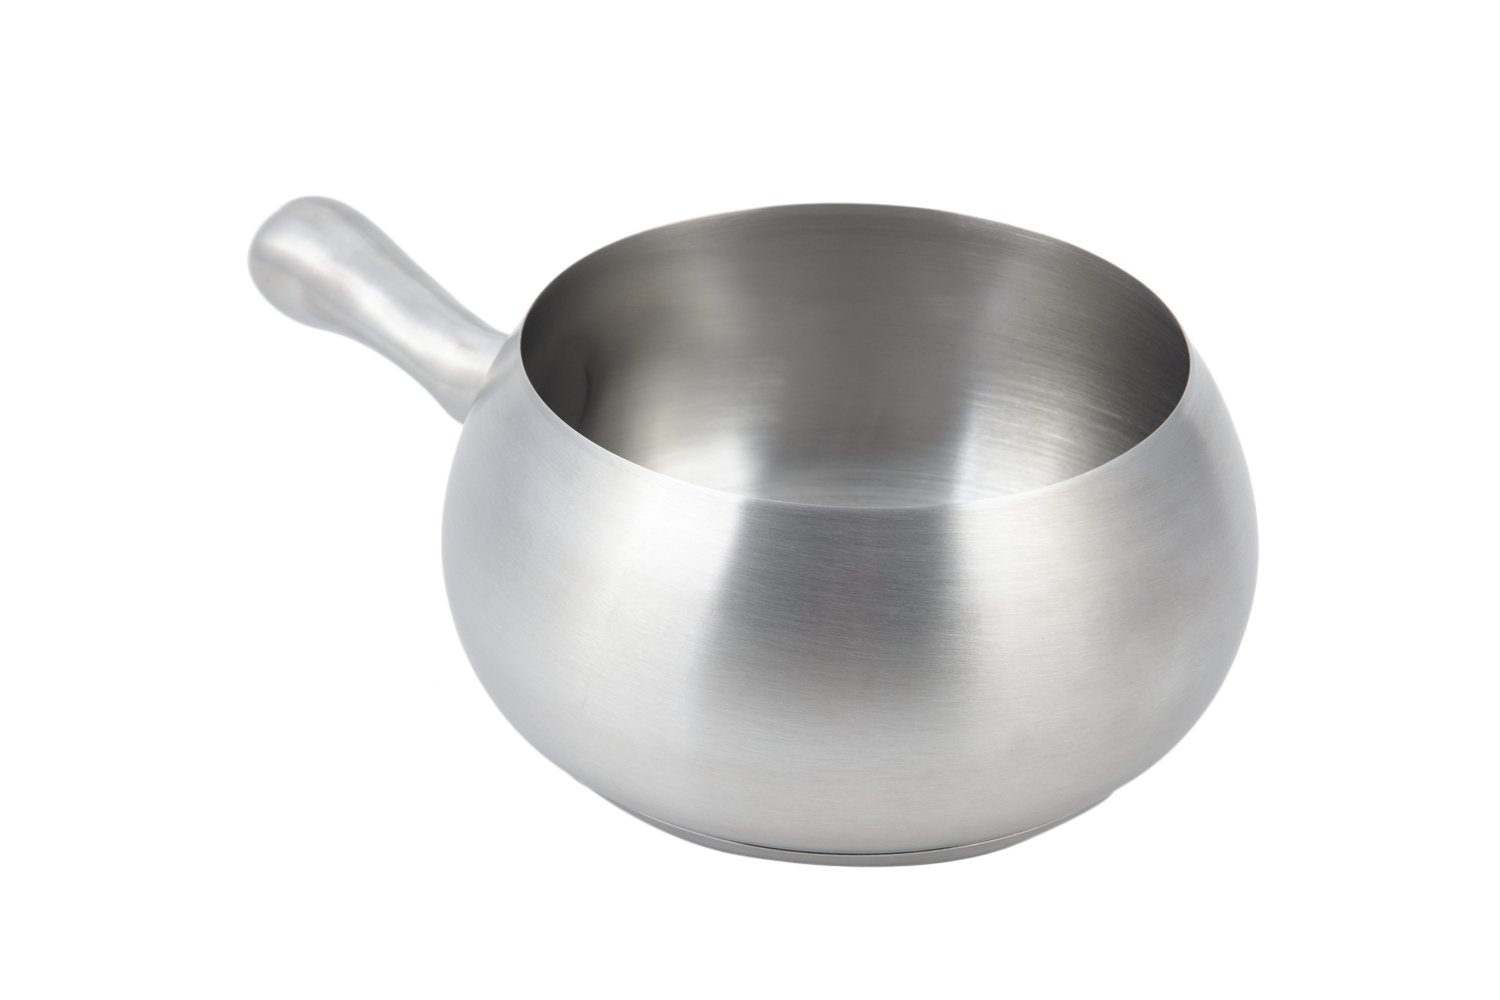 Bon Chef 5050SS Stainless Steel Induction Fondue Pot with Induction Bottom, 2-1/8 quart Capacity, 6'' Diameter x 4'' Height by Bon Chef